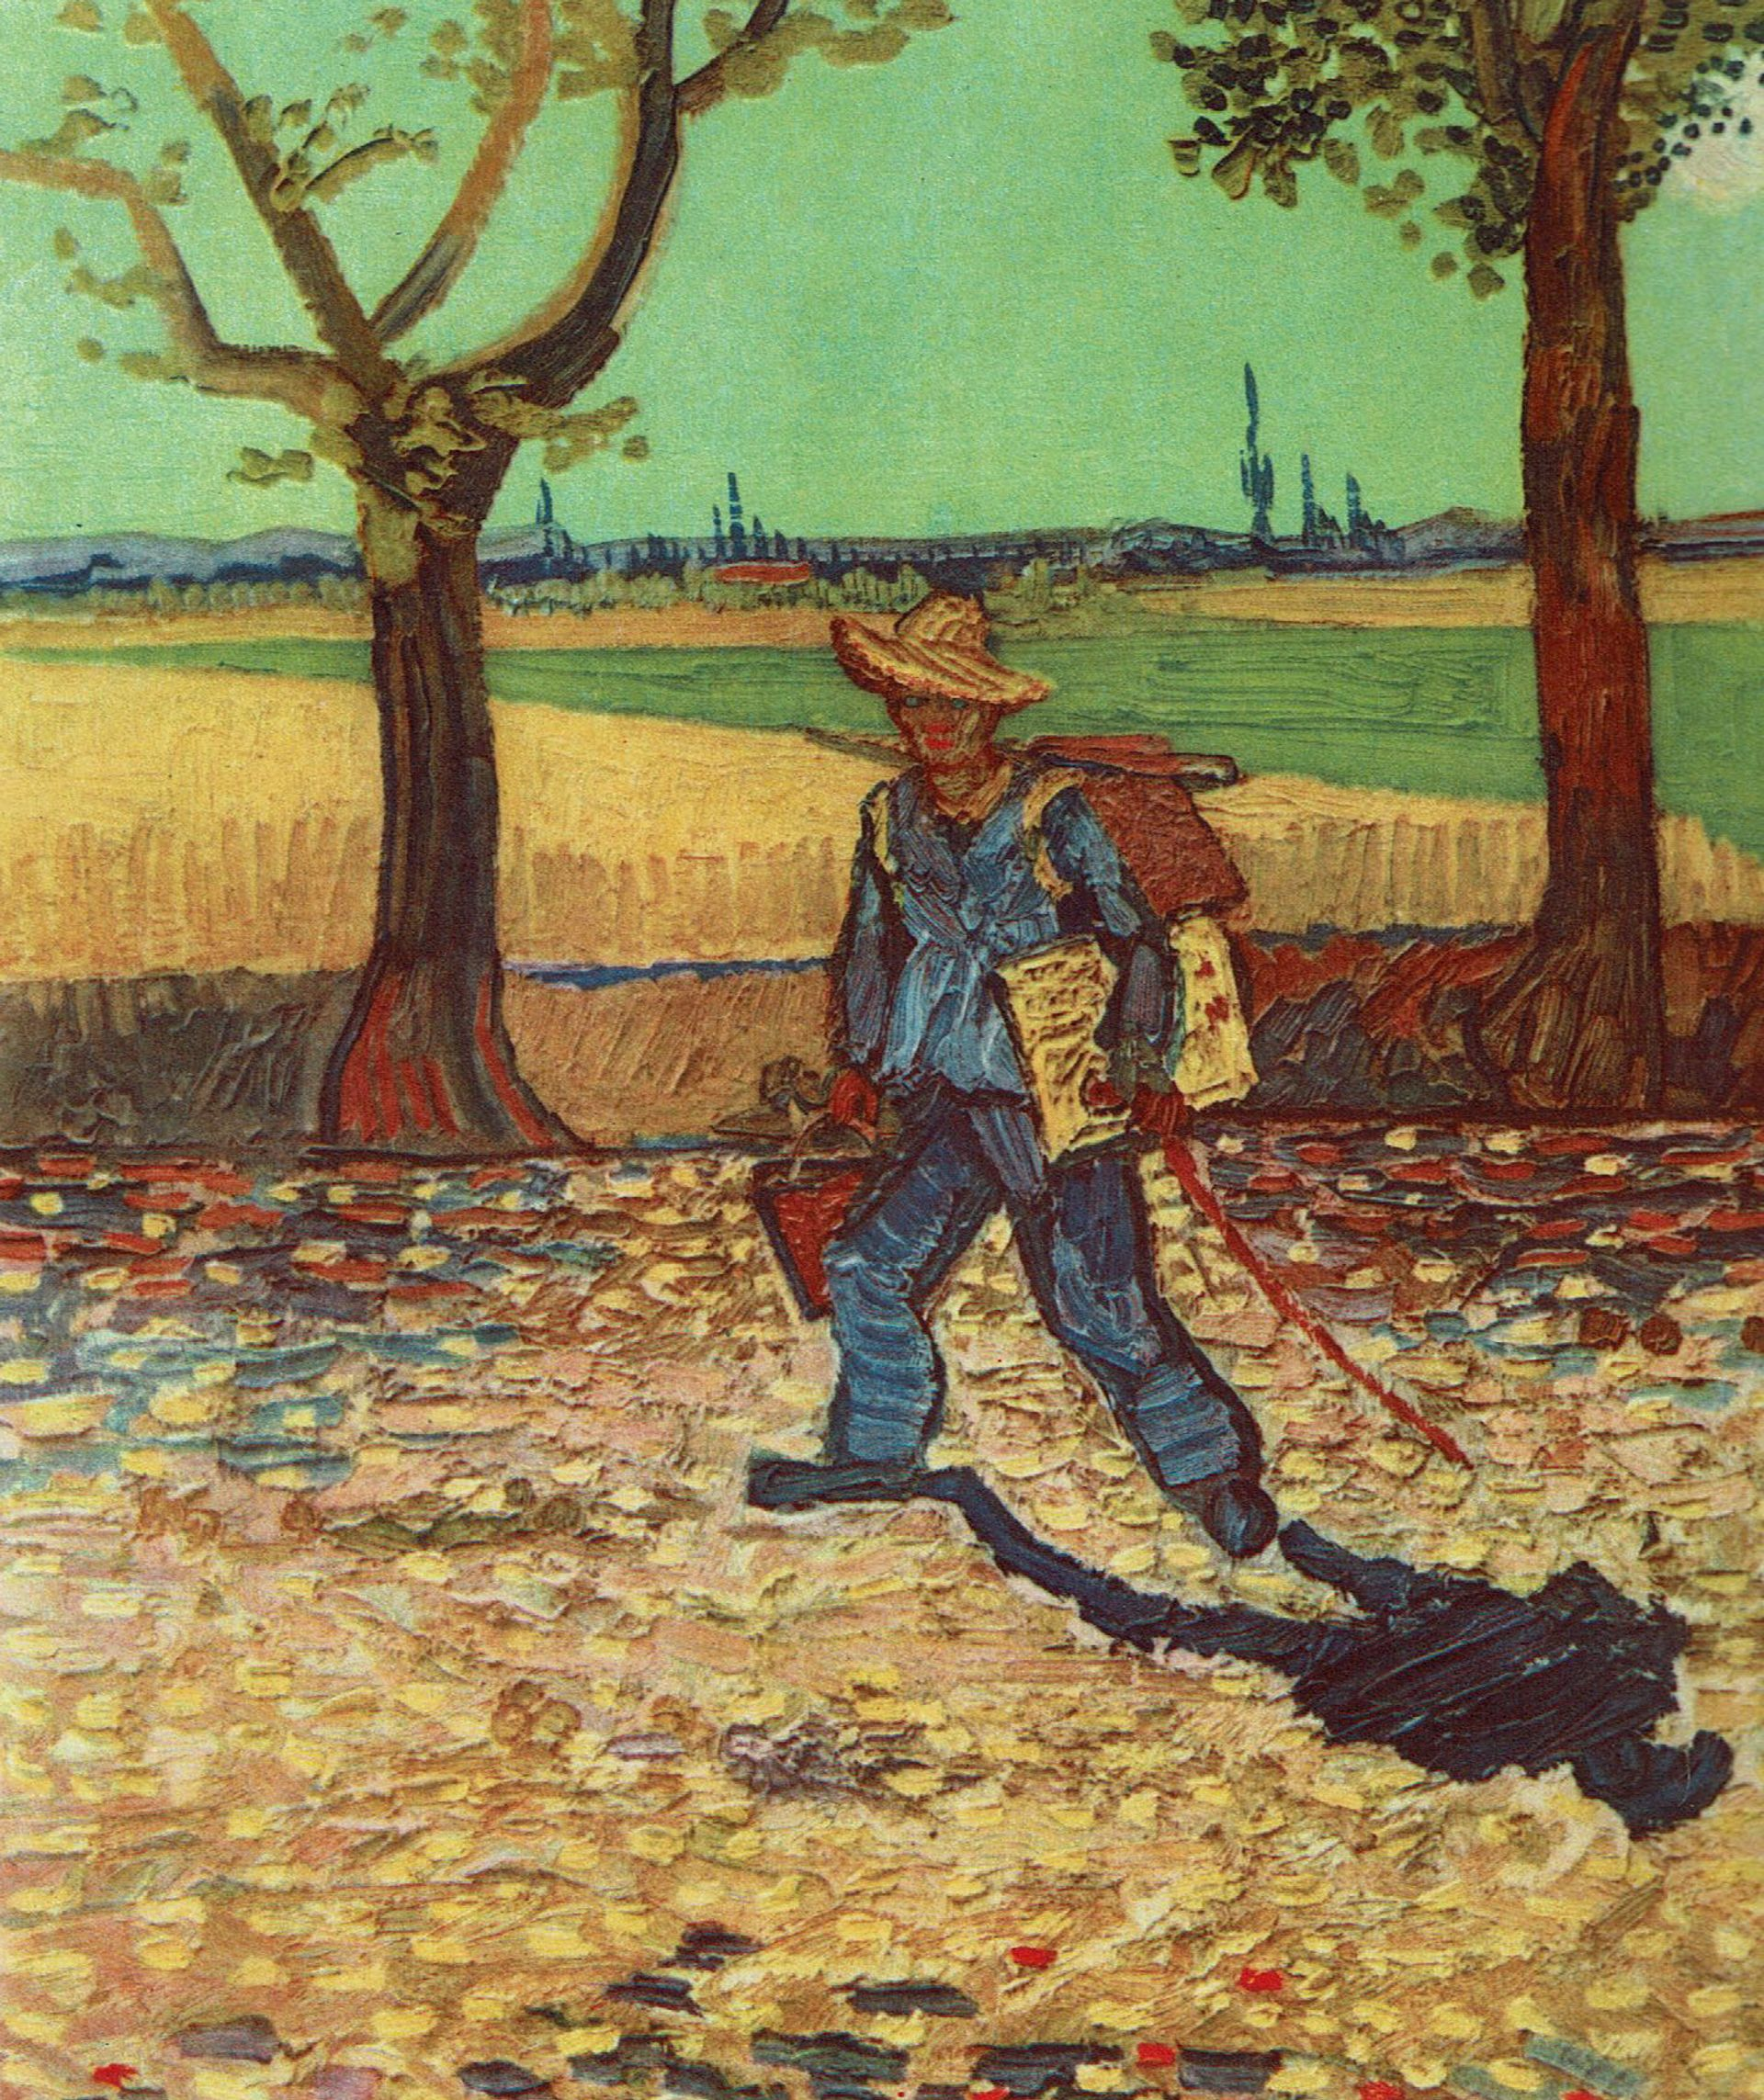 Vincent van Gogh's The Artist on the Road to Tarascon (1888)